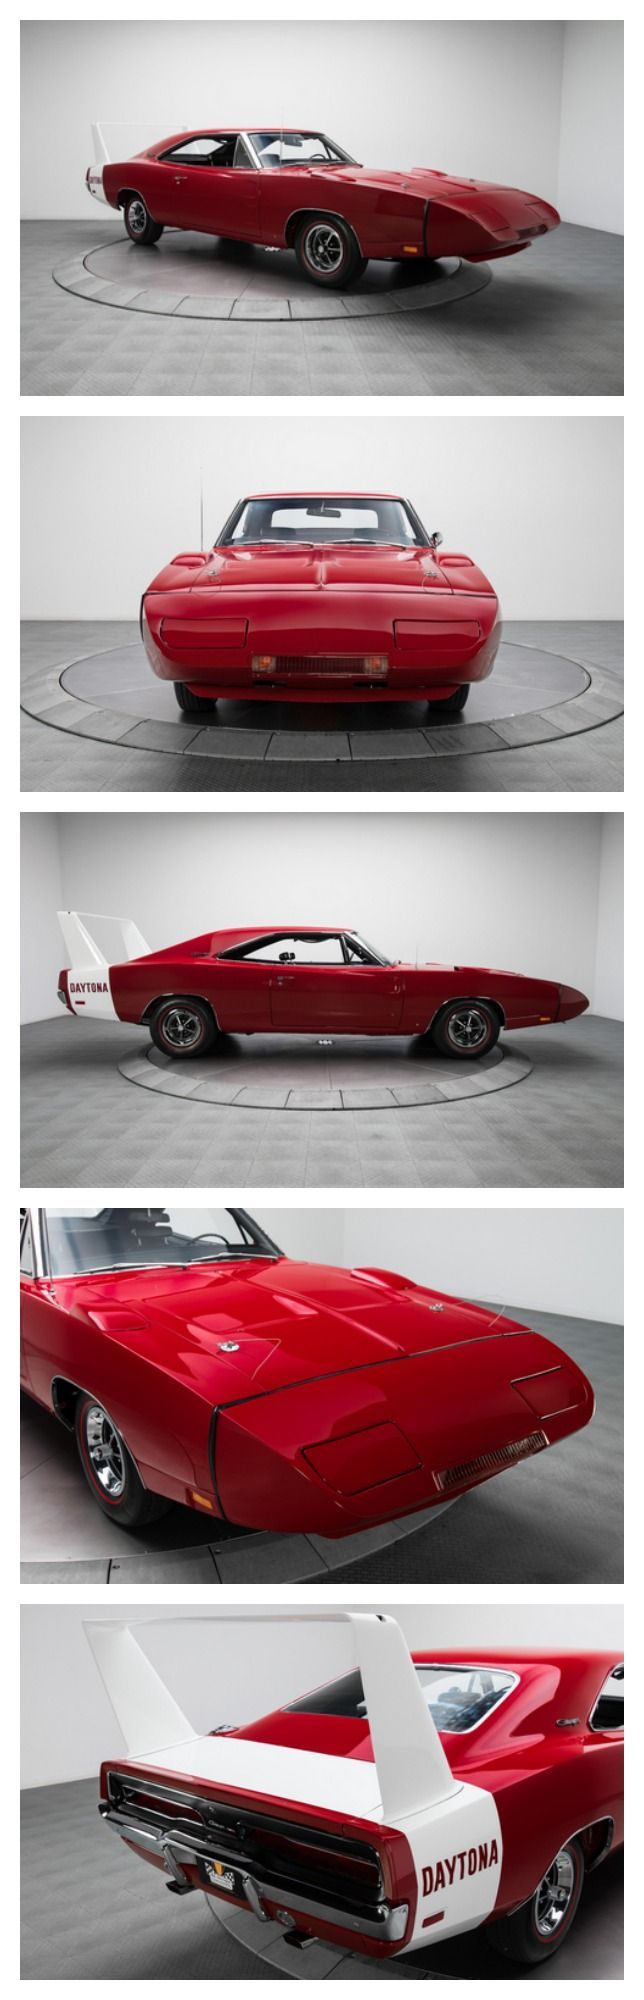 A poster child for the golden era of Detroit, the Charger Daytona stands head and shoulders above nearly every classic in terms of looks, exclusivity and performance. #autoawesome